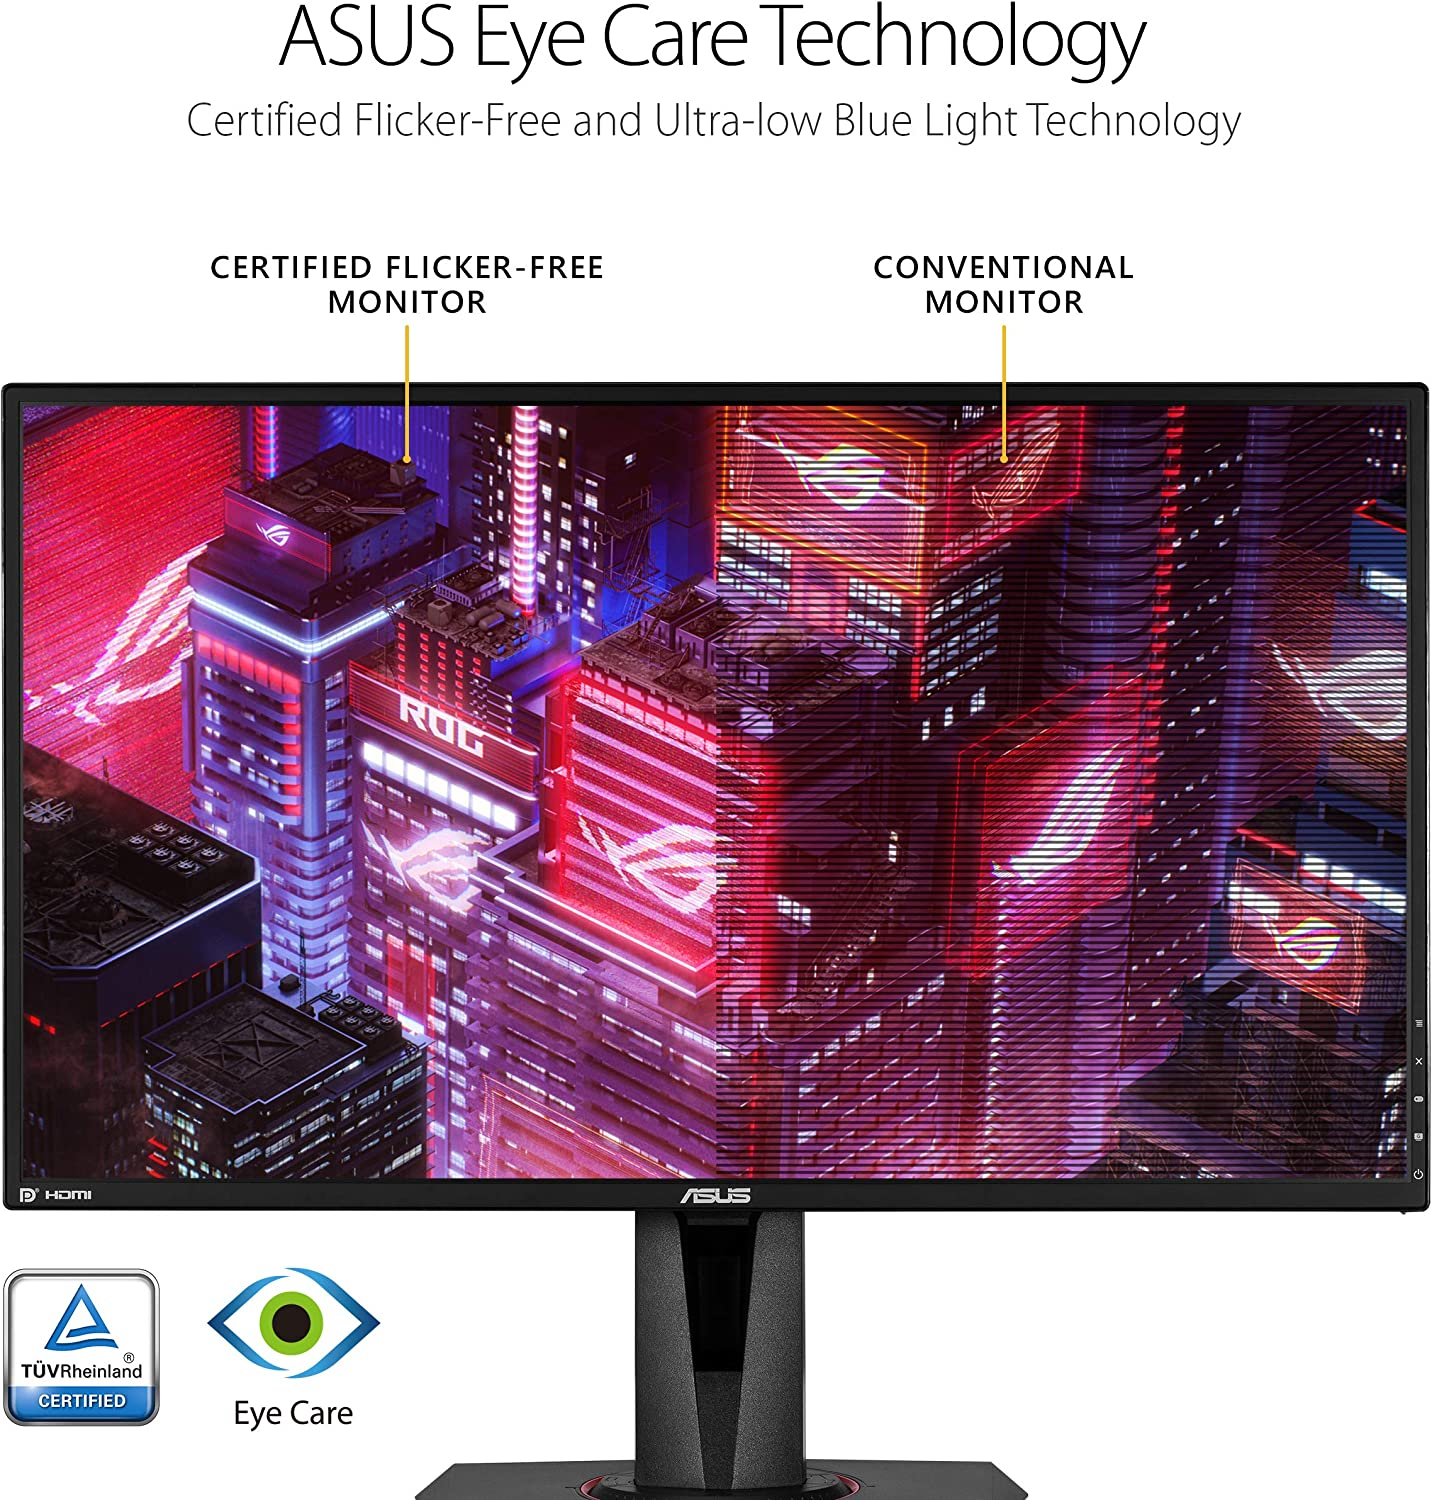 Amazon Com Asus Tuf Gaming Vg27aq 27 Monitor 1440p Wqhd 2560 X 1440 Ips 165hz Supports 144hz G Sync Compatible 1ms Extreme Low Motion Blur Sync Eye Care Displayport Hdmi Black Computers Accessories